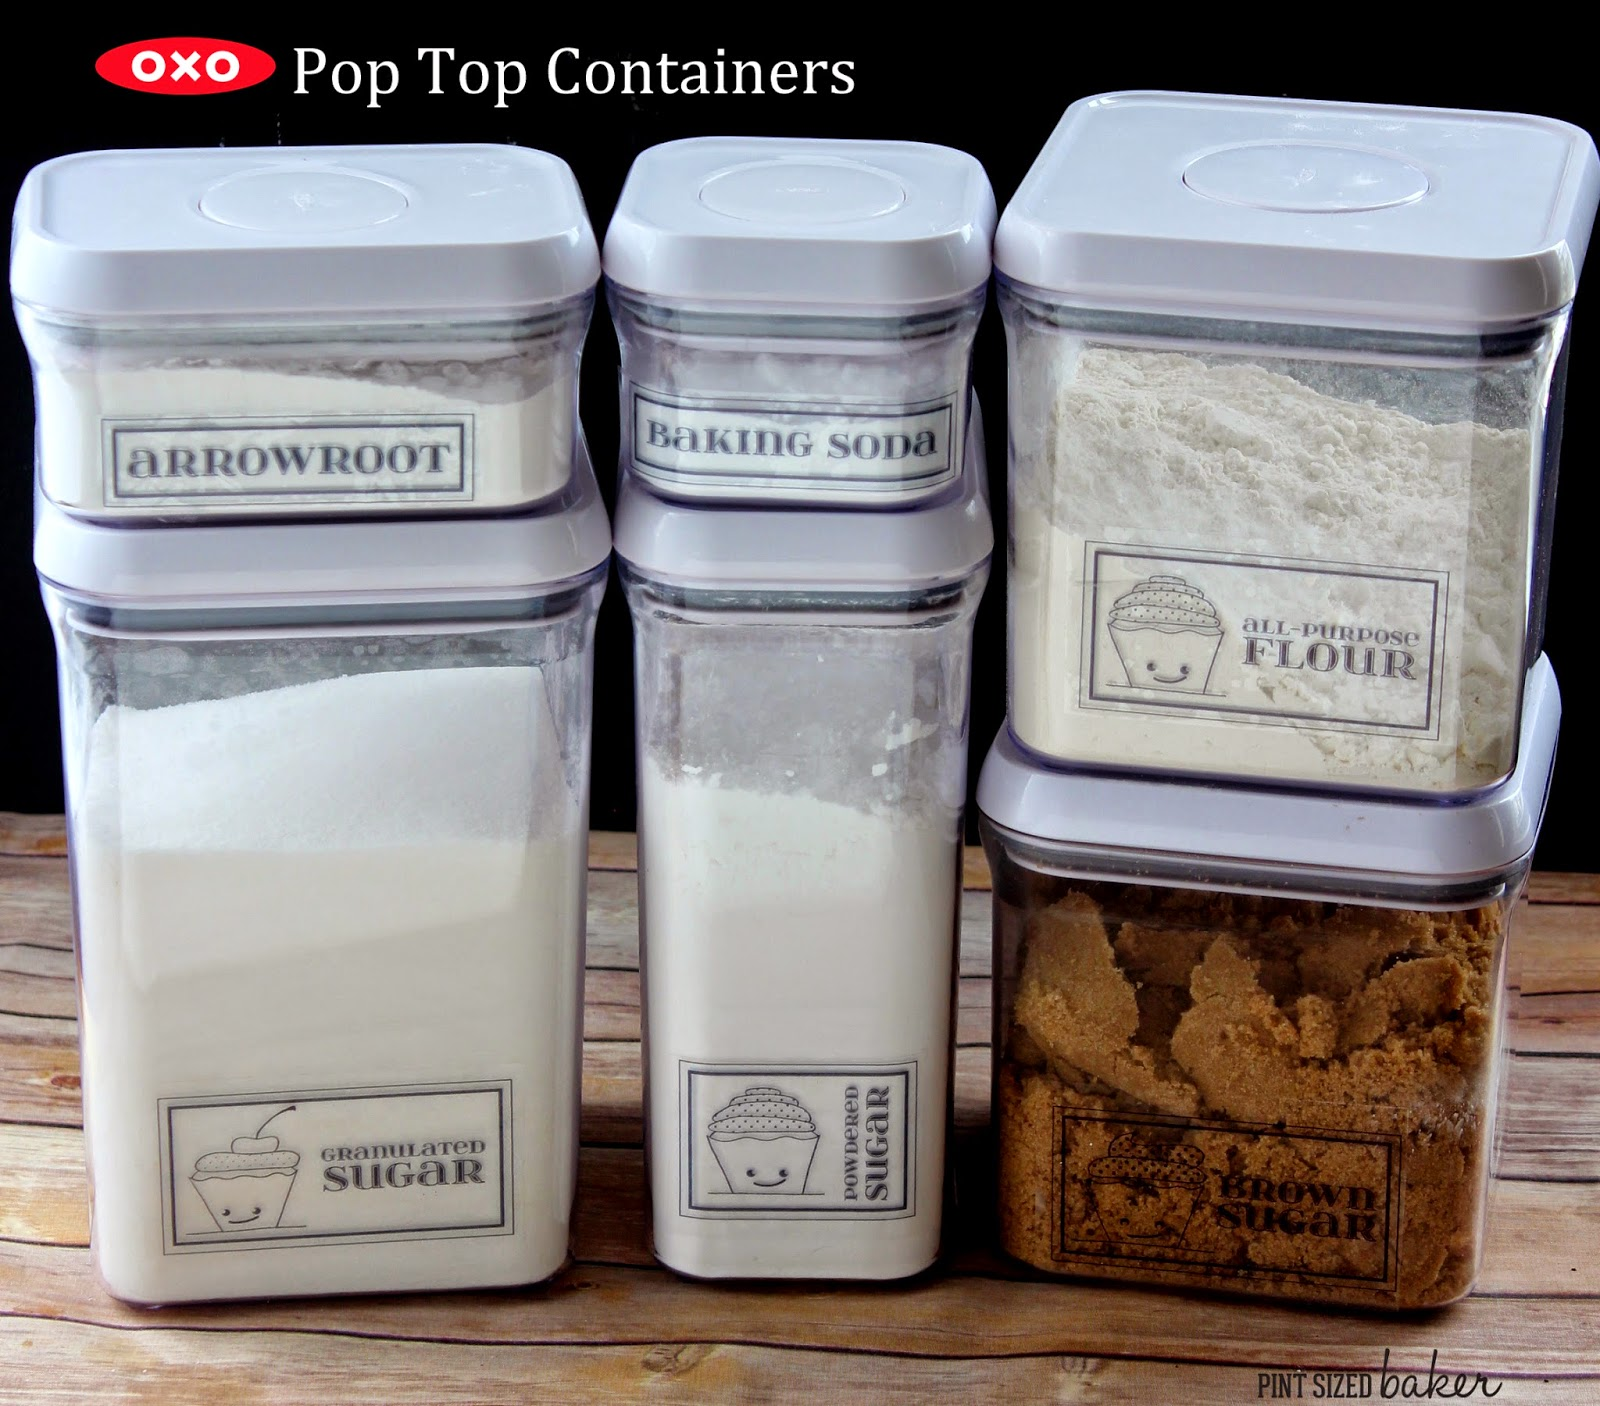 Get the OXO Pop Containers from The Container Store.